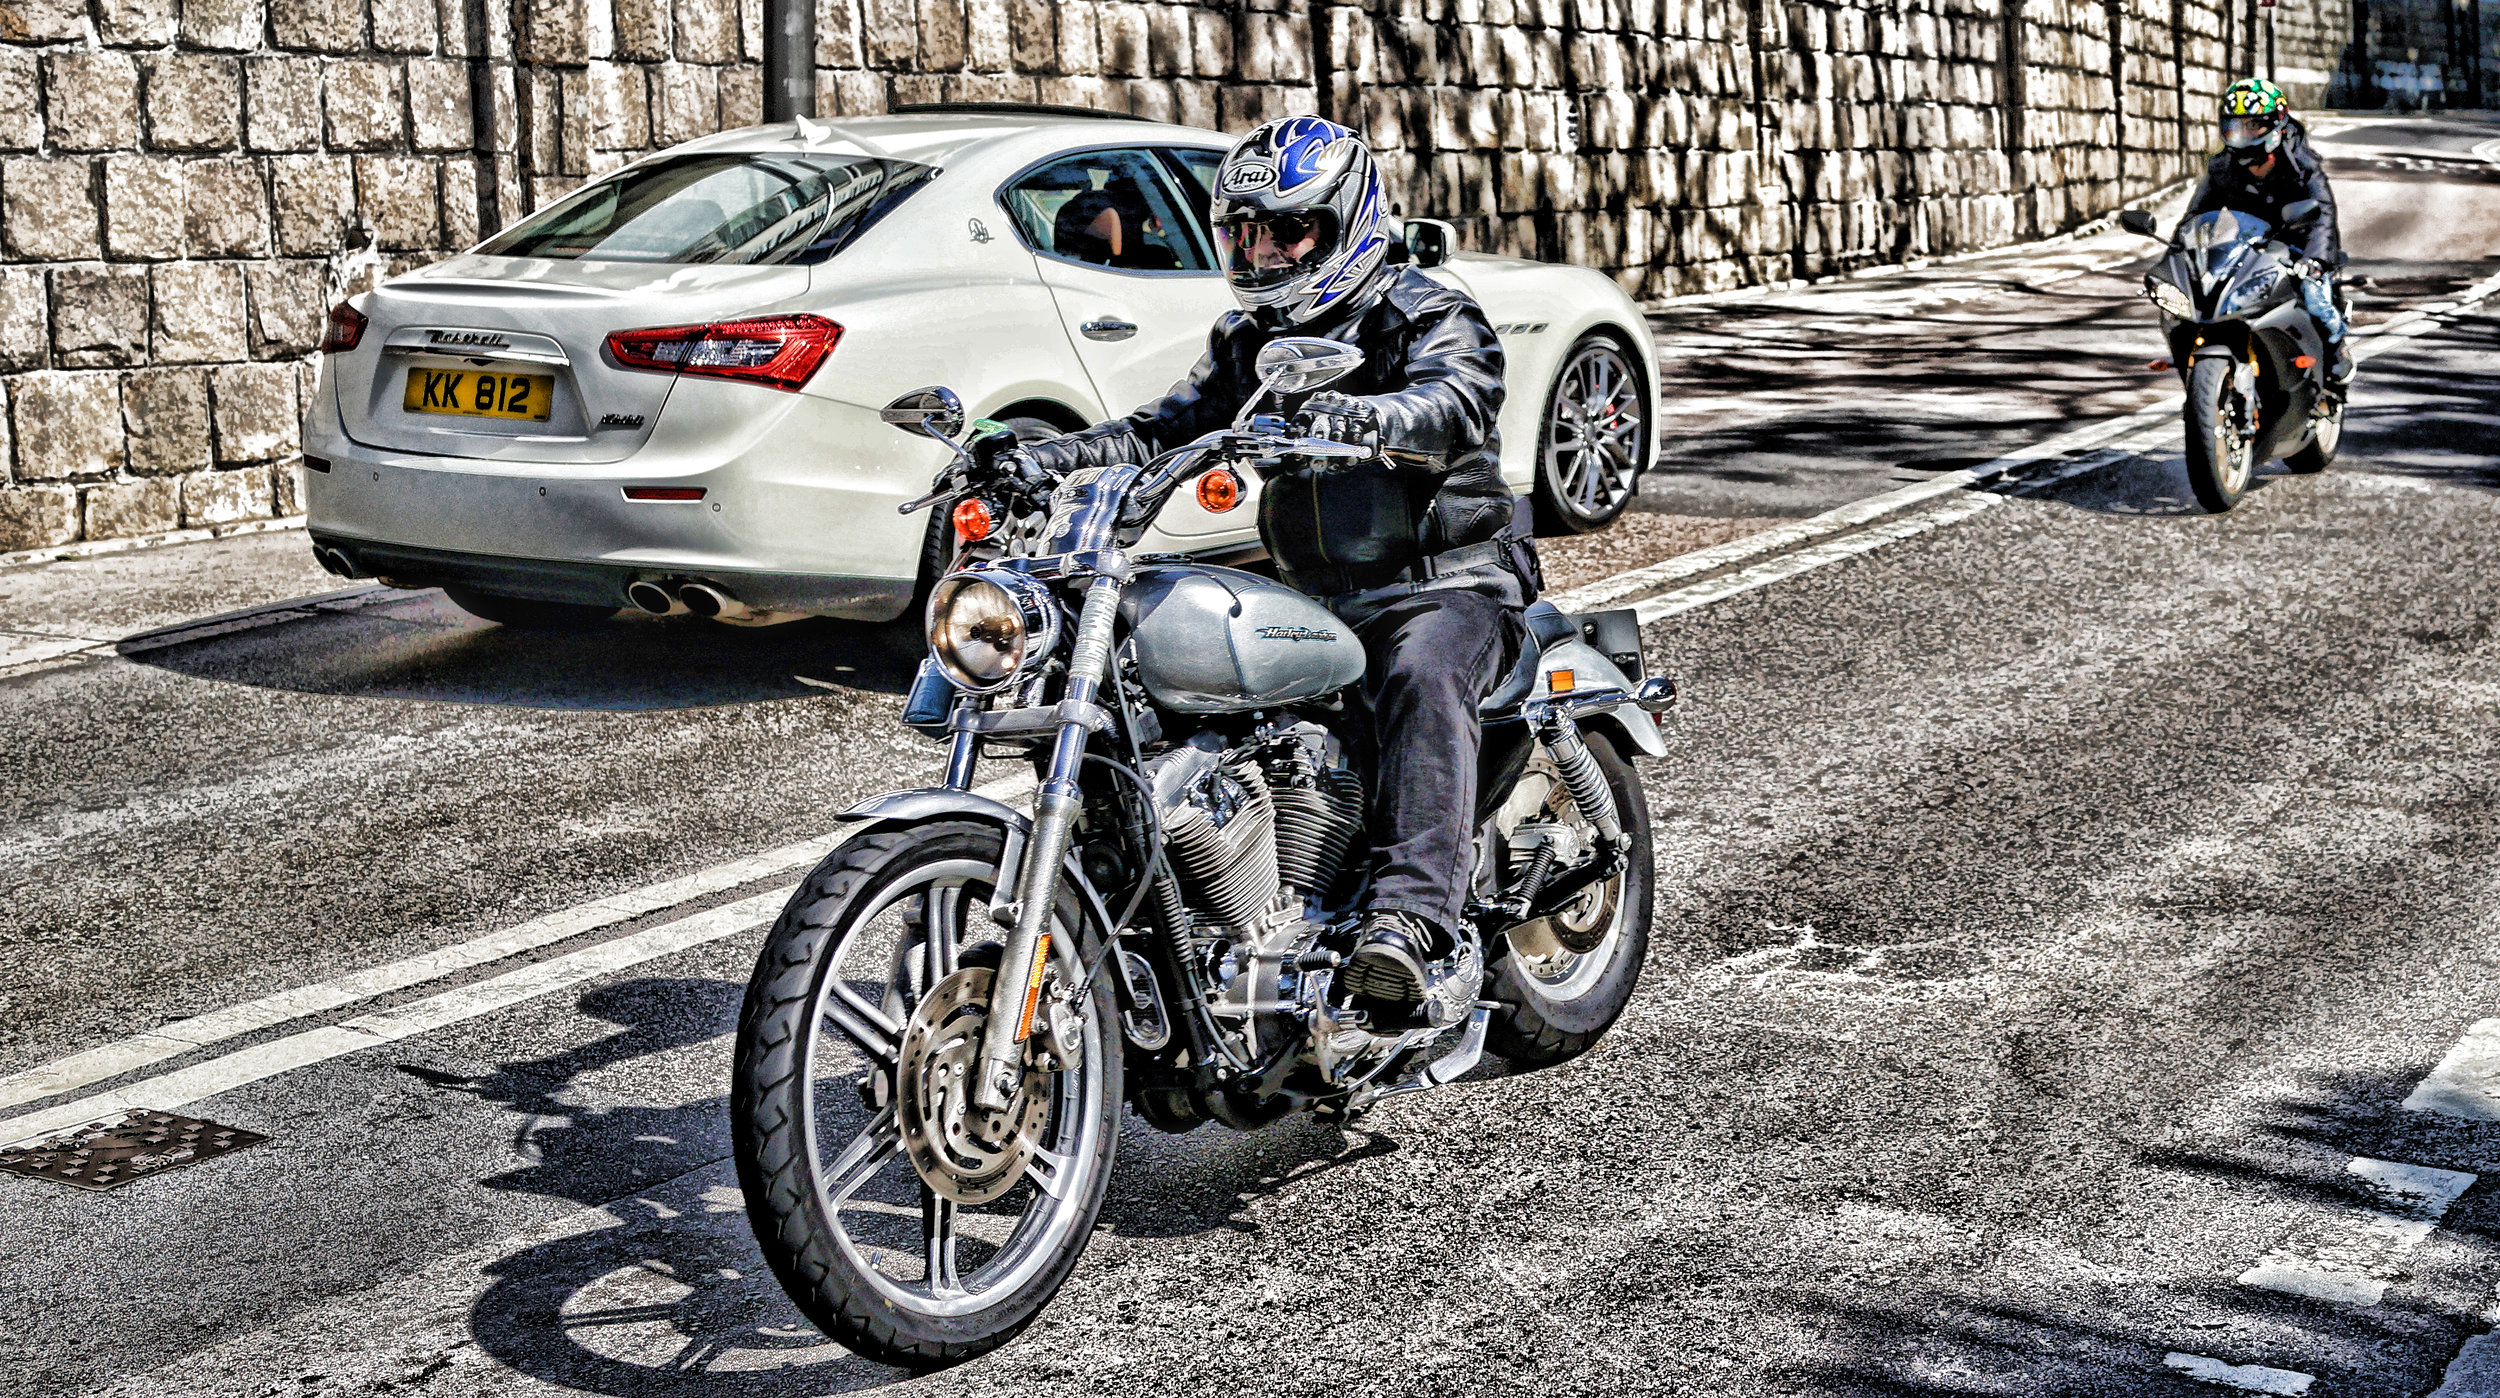 Quite a rare image, a fancy bike and a fancy car in the same image, I think a Maserati has a lot of class and that engine sound! and a Harley speaks for itself... that rumble you can hear a mile away!! ... awesome!